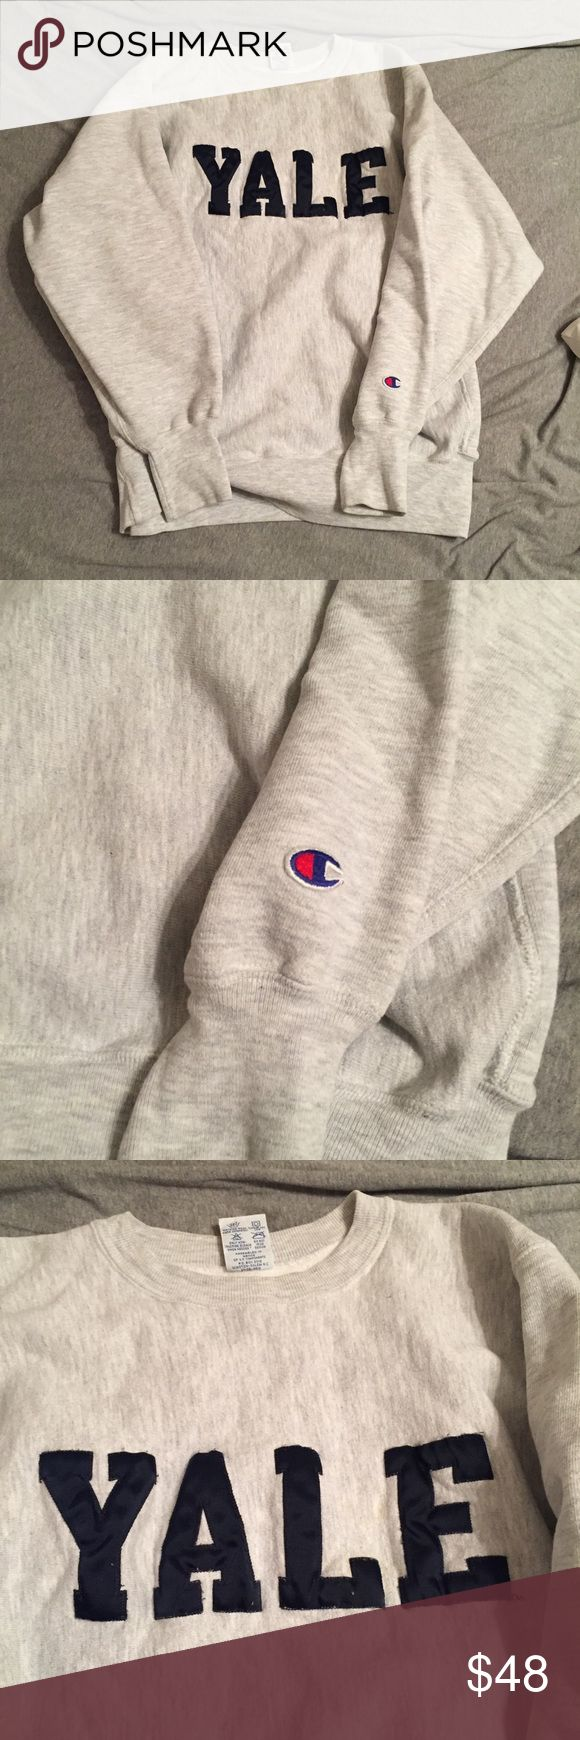 Vintage Champion YALE crew neck sweatshirt Vintage champion YALE sweatshirt! Size large! Crew neck style! In excellent used condition. No staining! Champion Sweaters Crew & Scoop Necks